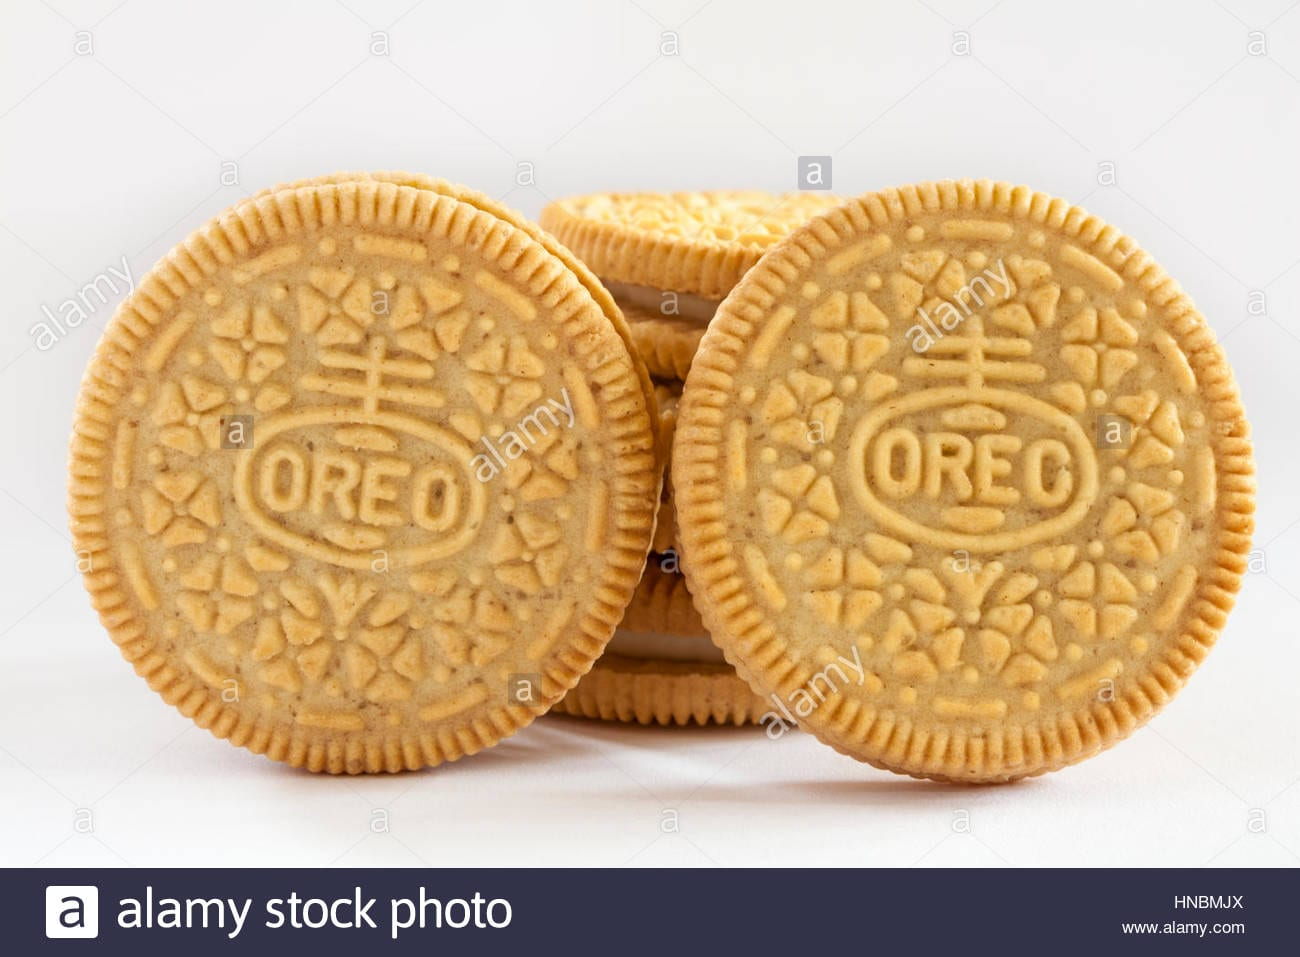 Golden Oreo Biscuits, Sandwich Biscuits With A Vanilla Flavour